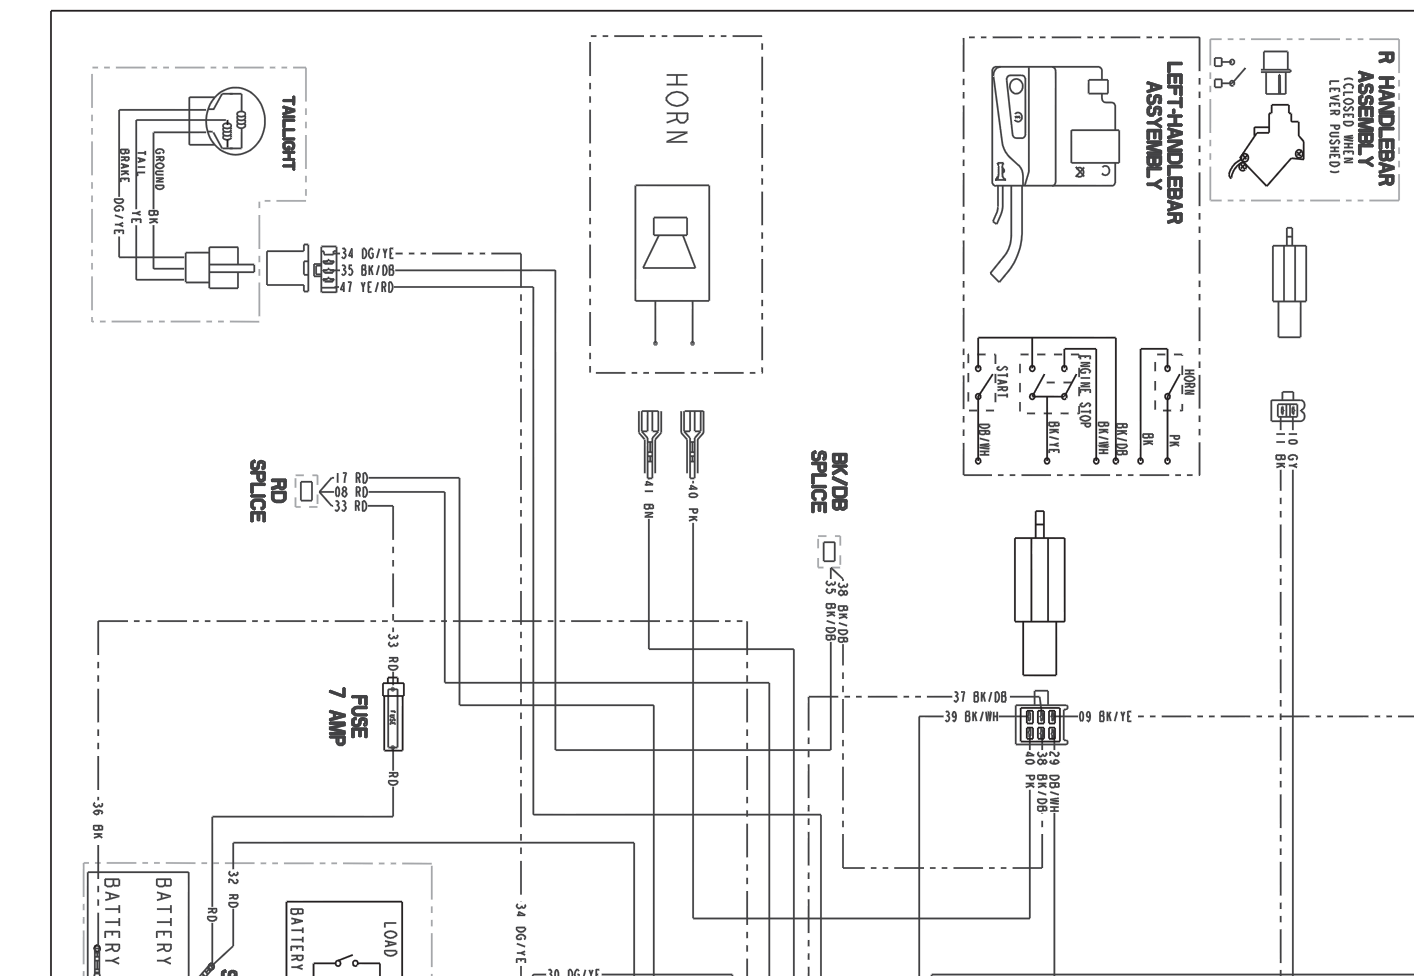 polaris sportsman 800 wiring diagram get free image 2001 polaris sportsman  90 electrical schematic 2003 polaris sportsman 90 wiring diagram